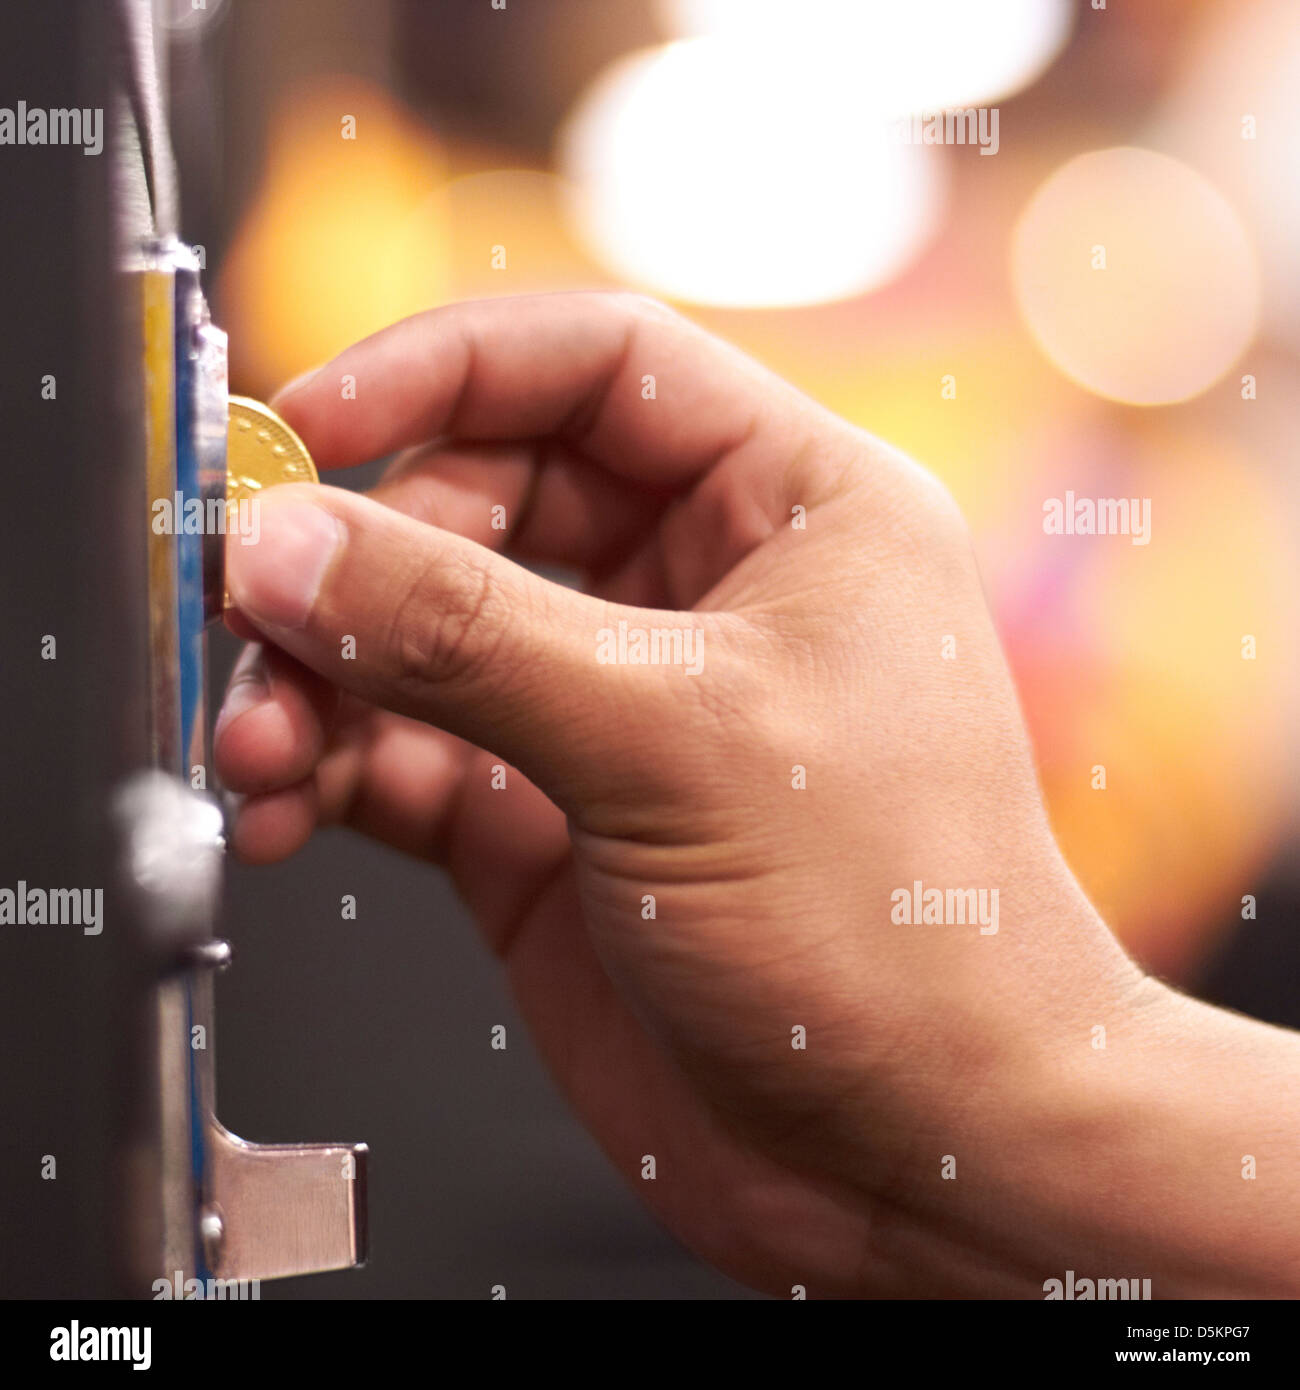 Hand inserting coin into machine - Stock Image